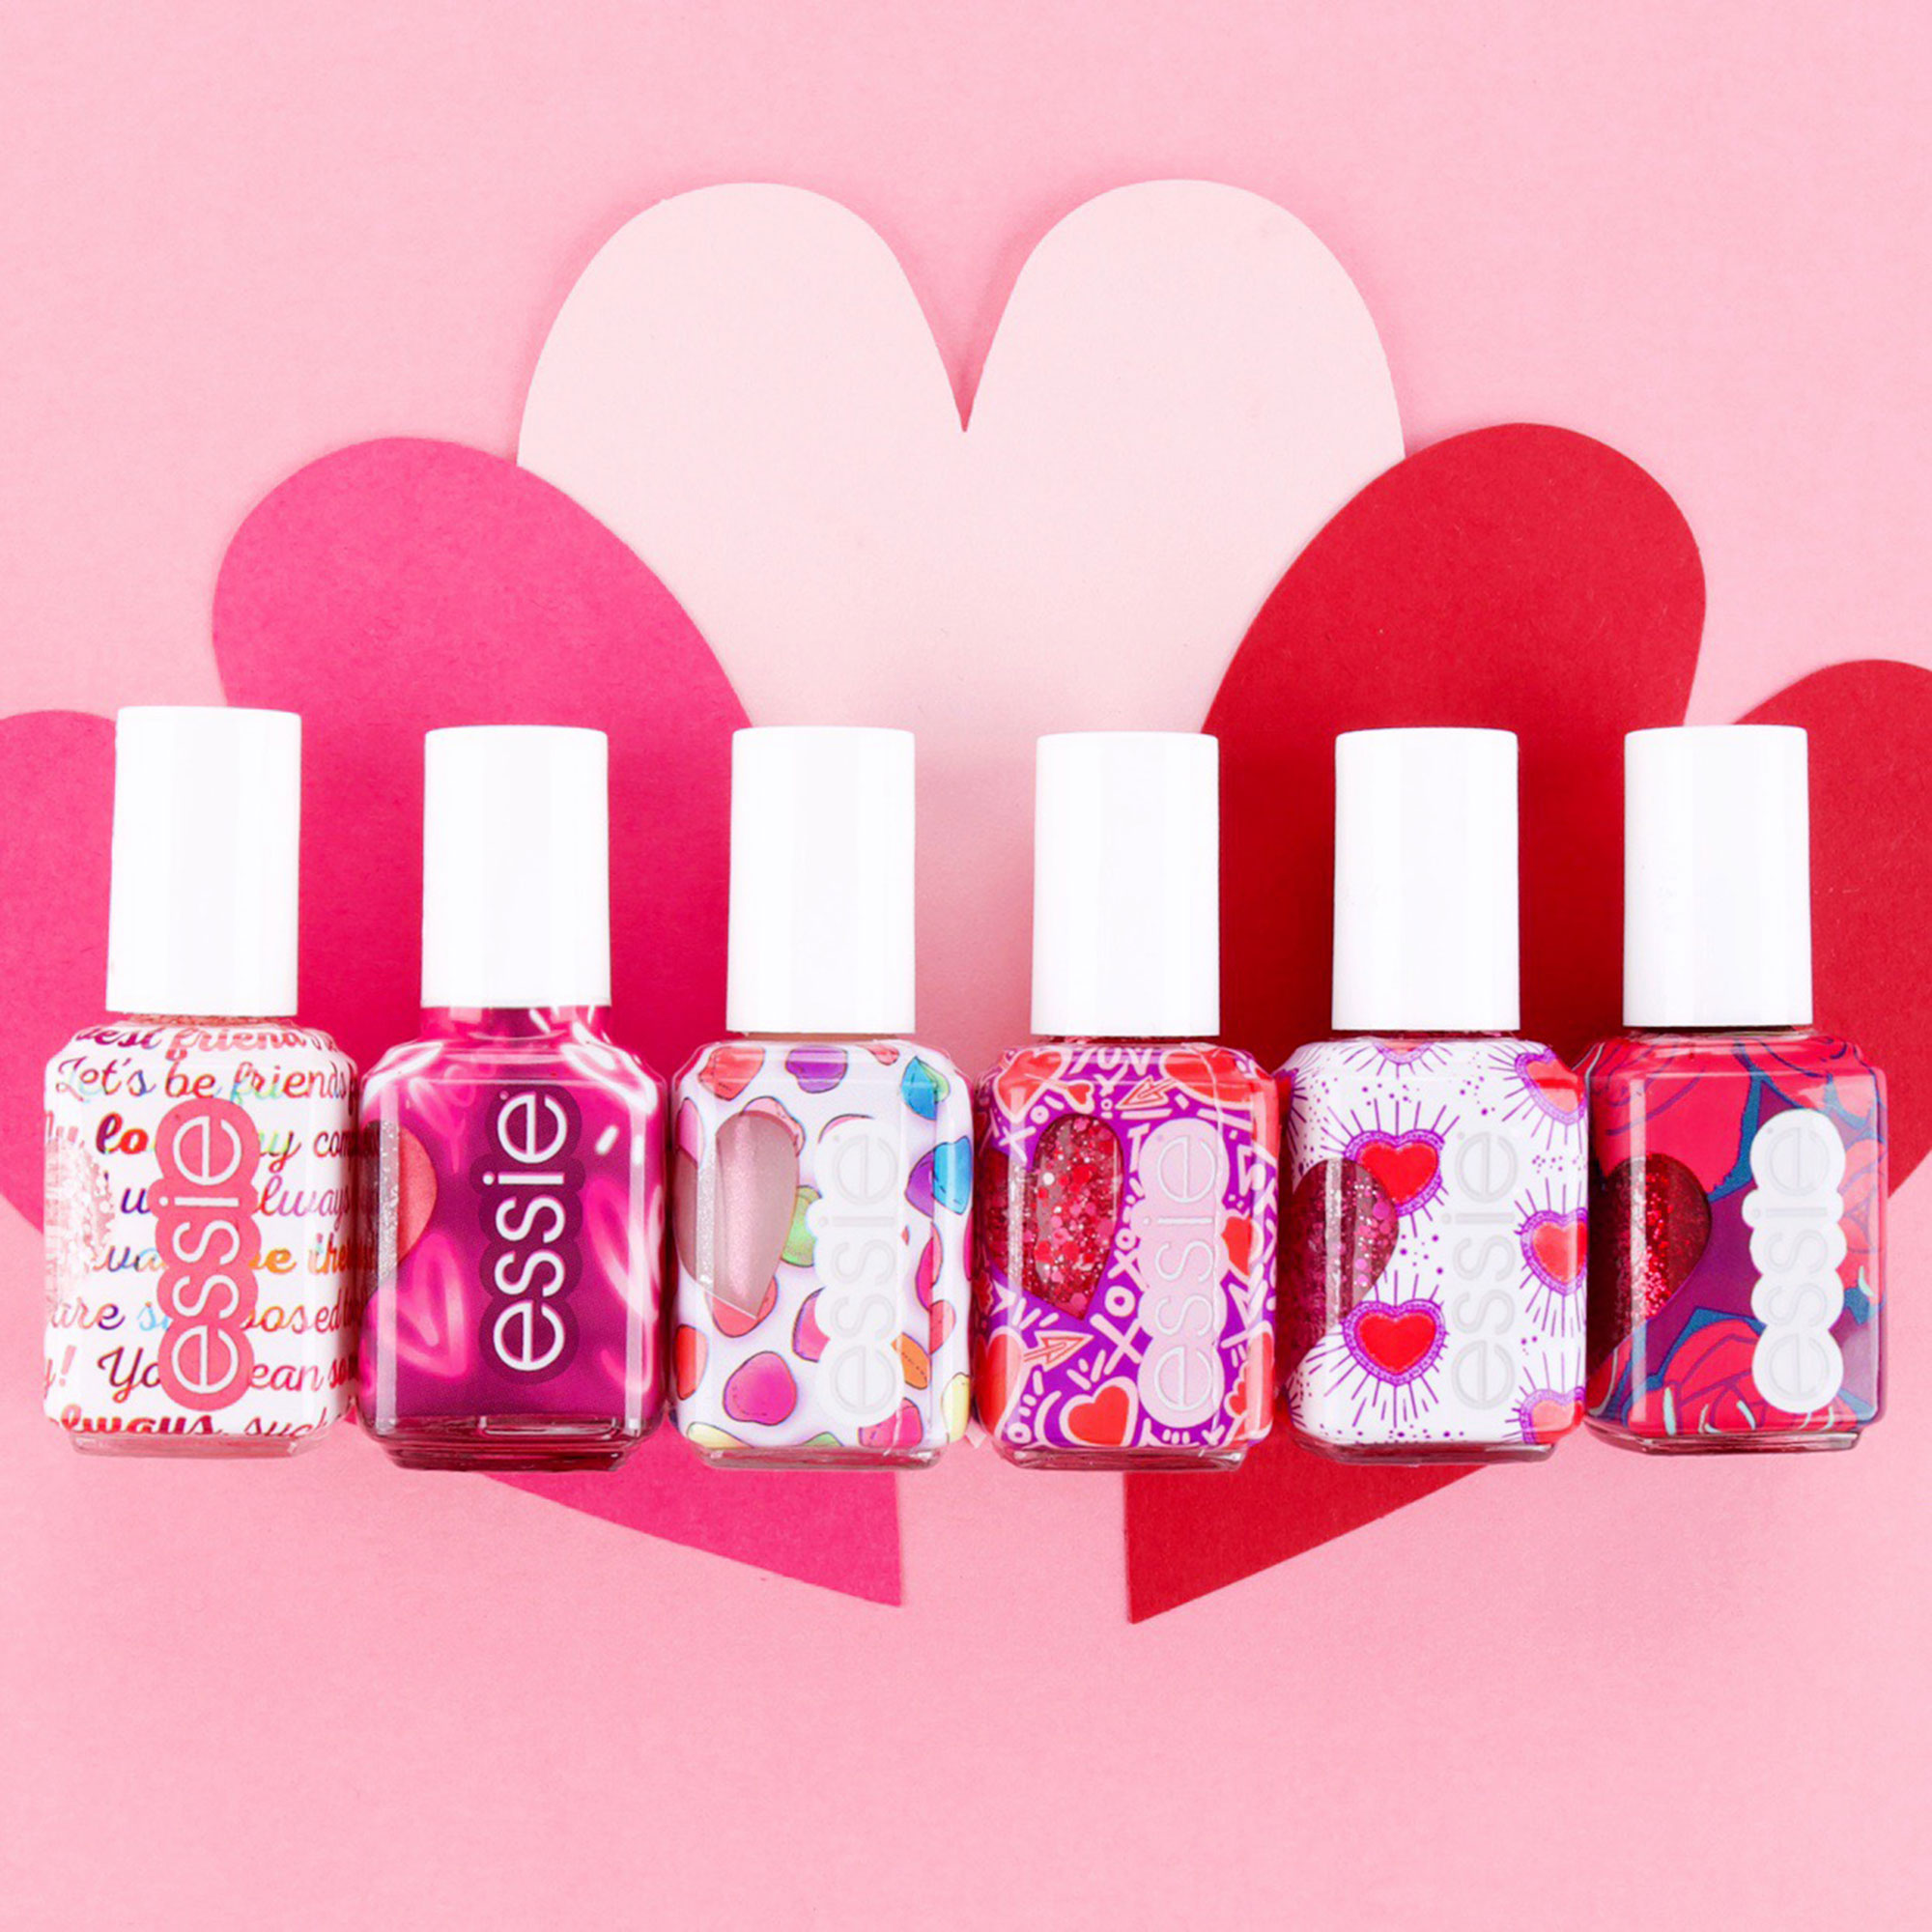 Valentine's Day Gift Guide 2019: Beauty and Fashion Ideas for the Lady in Your Life - Give her the gift of a super festive mani with this adorably packaged selection of shimmering pink and red shades. $9 each, essie.com